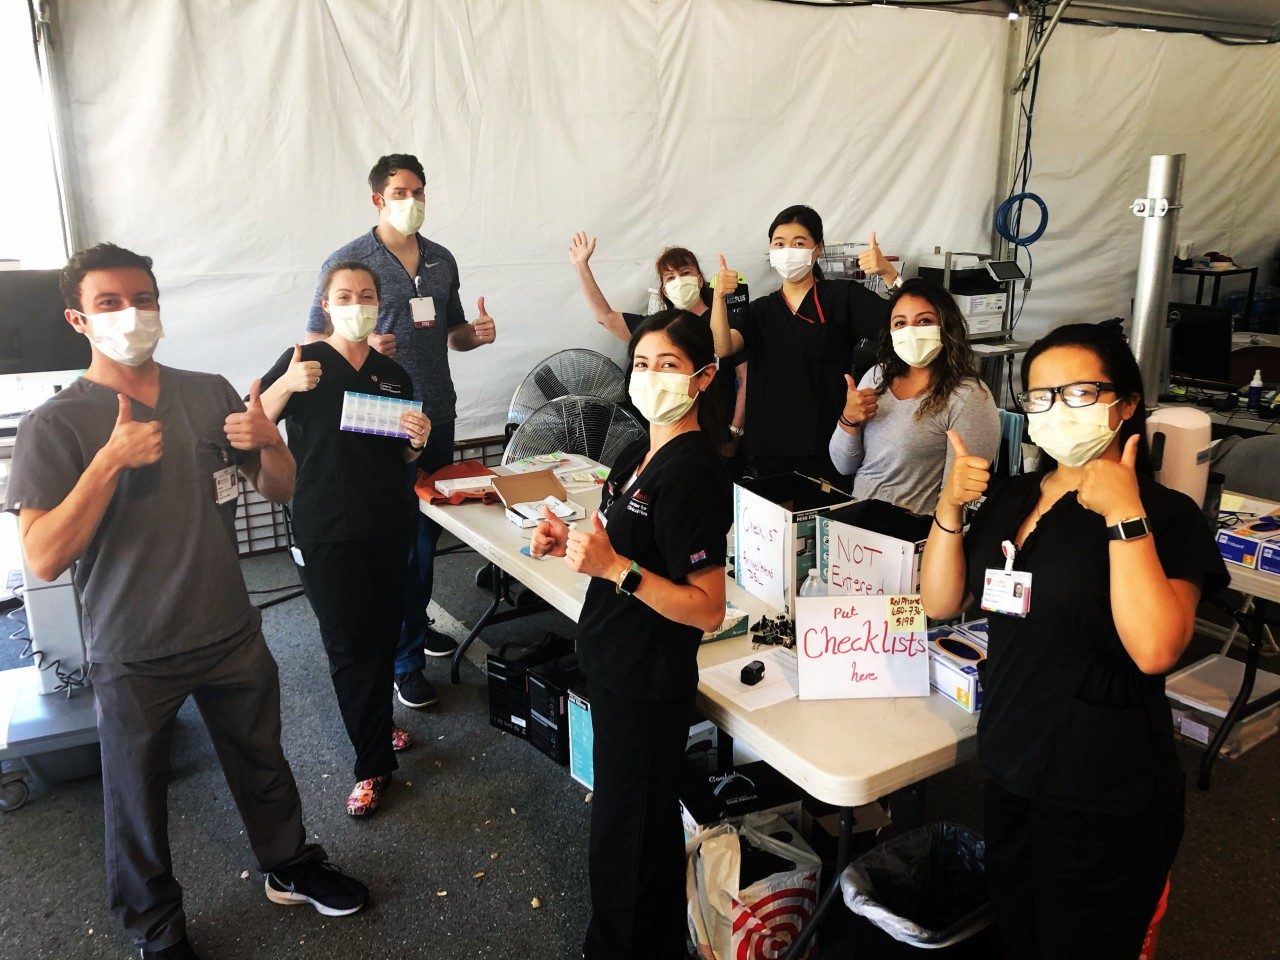 """The Stanford Daily: """"Stanford researchers test oral COVID-19 treatment for mild cases"""""""